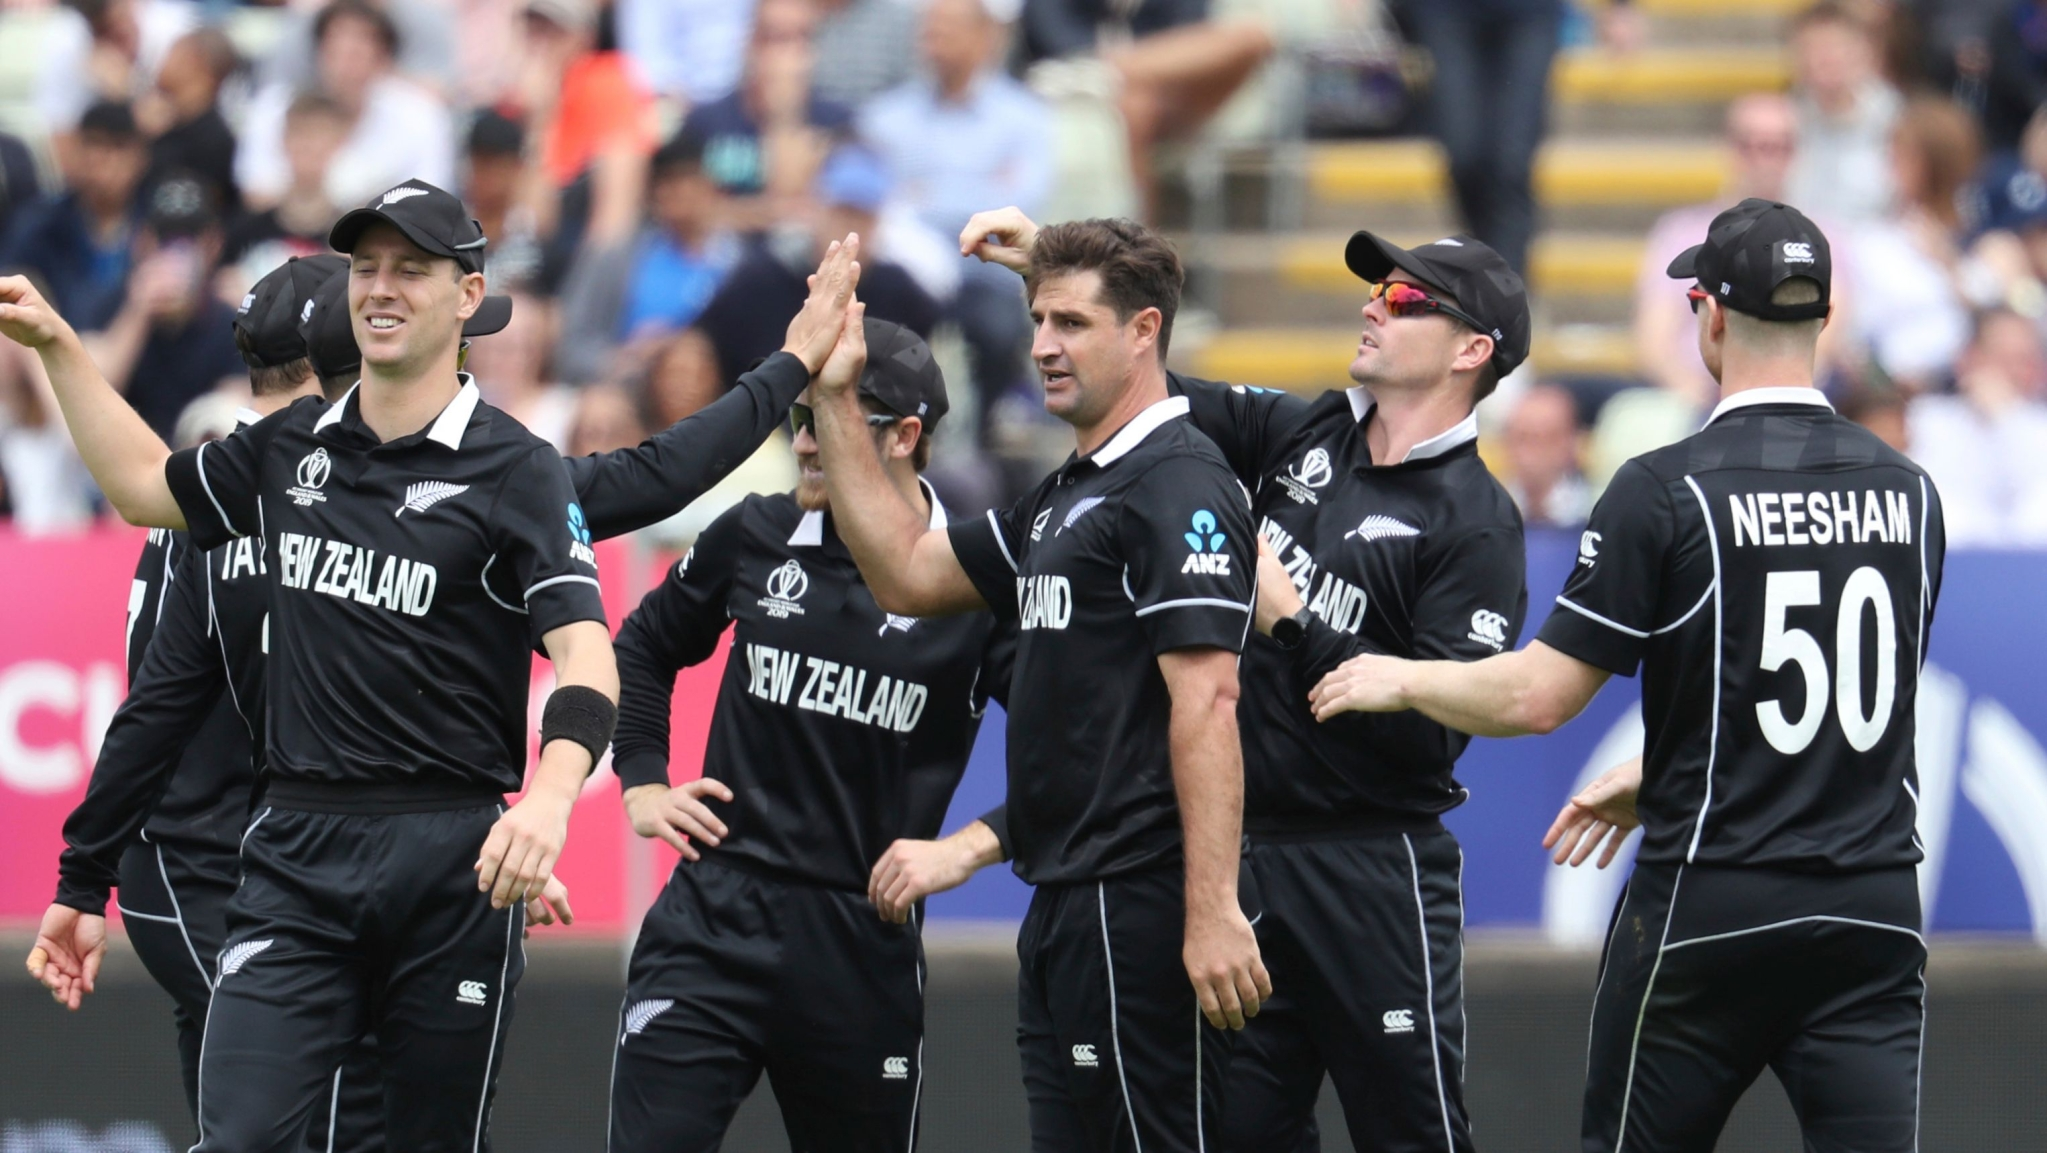 Clinical New Zealand Restrict Struggling South Africa to 241/6